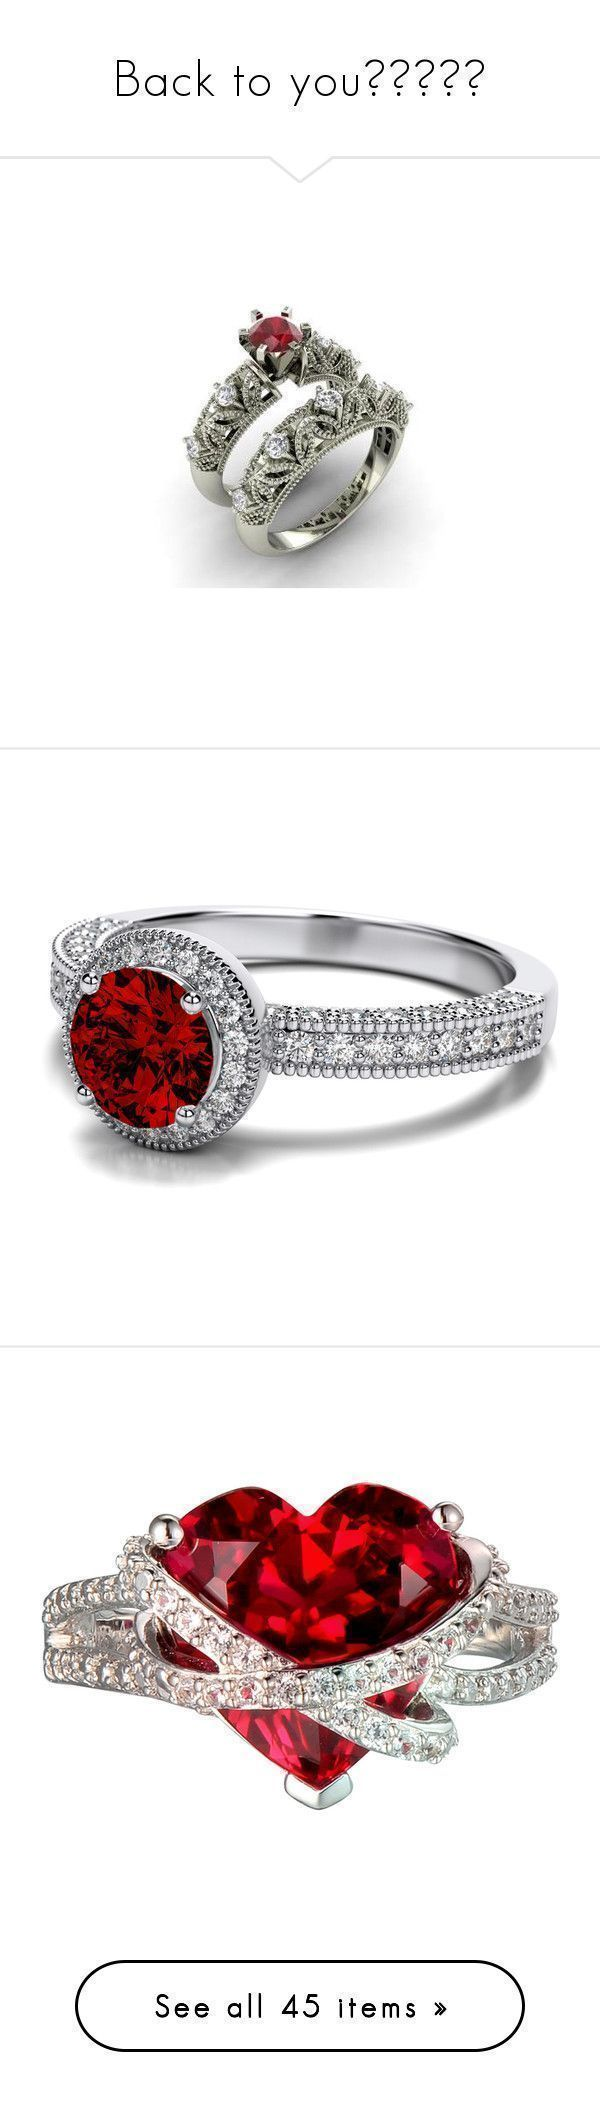 """""""Back to you❤️"""" by skh-siera18 ❤ liked on Polyvore featuring jewelry, rings, anel, diamond rings, 14k diamond ring, diamond band ring, diamond wedding rings, wedding band ring, accessories and red #diamondweddingbands #diamondweddingrings #weddingrings"""